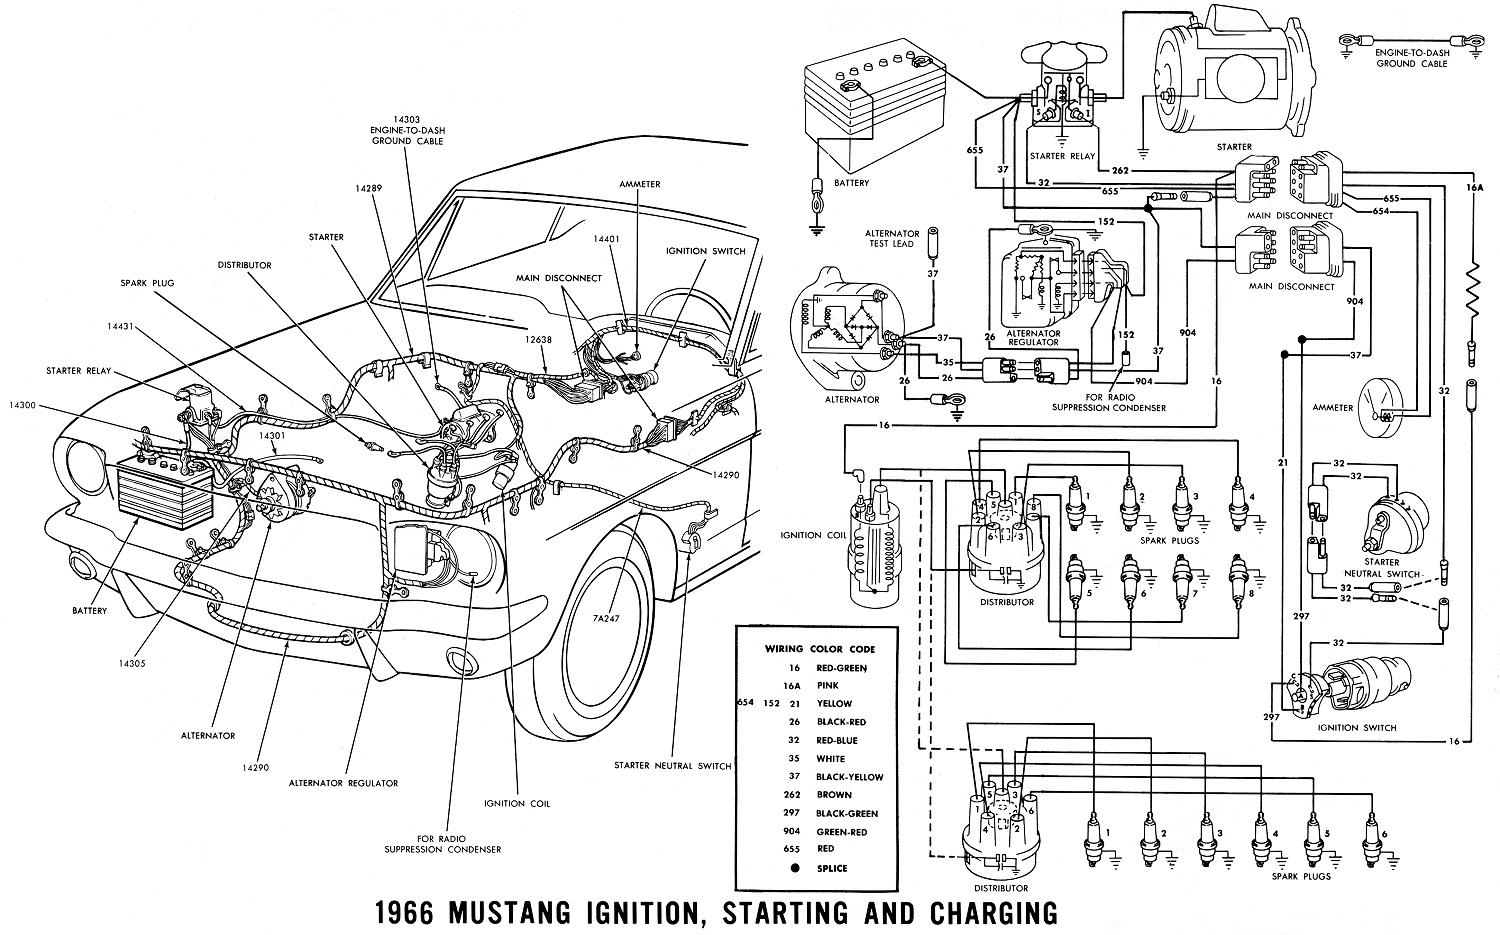 Ford 289 Coil Wiring - Wiring Diagram Detailed - Ignition Coil Wiring Diagram